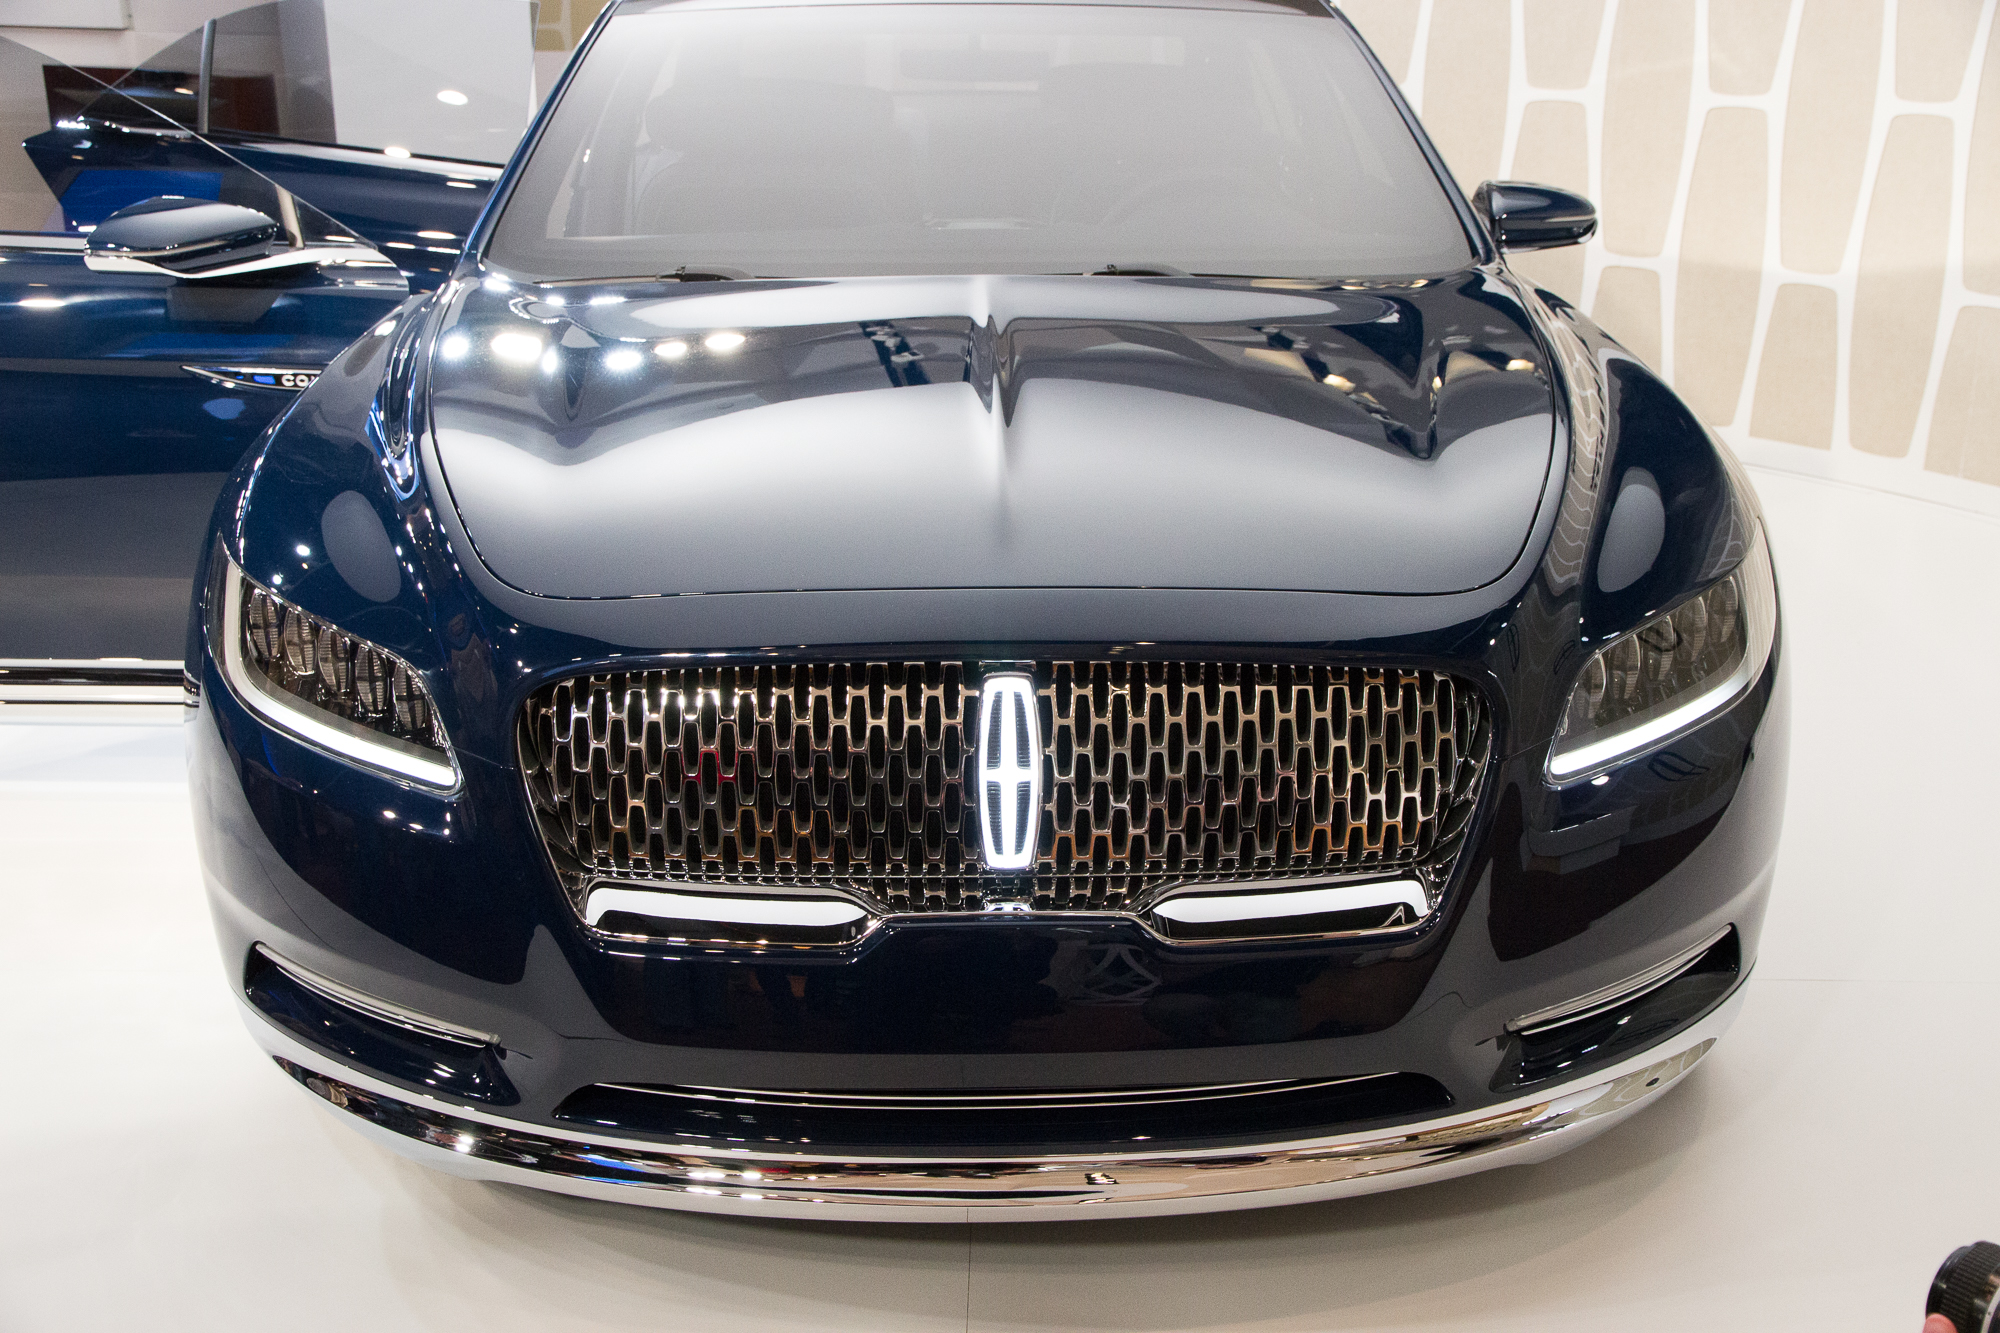 week march s the show edition weeks photos price this h lincoln york auto continental news new top concept city unveiling